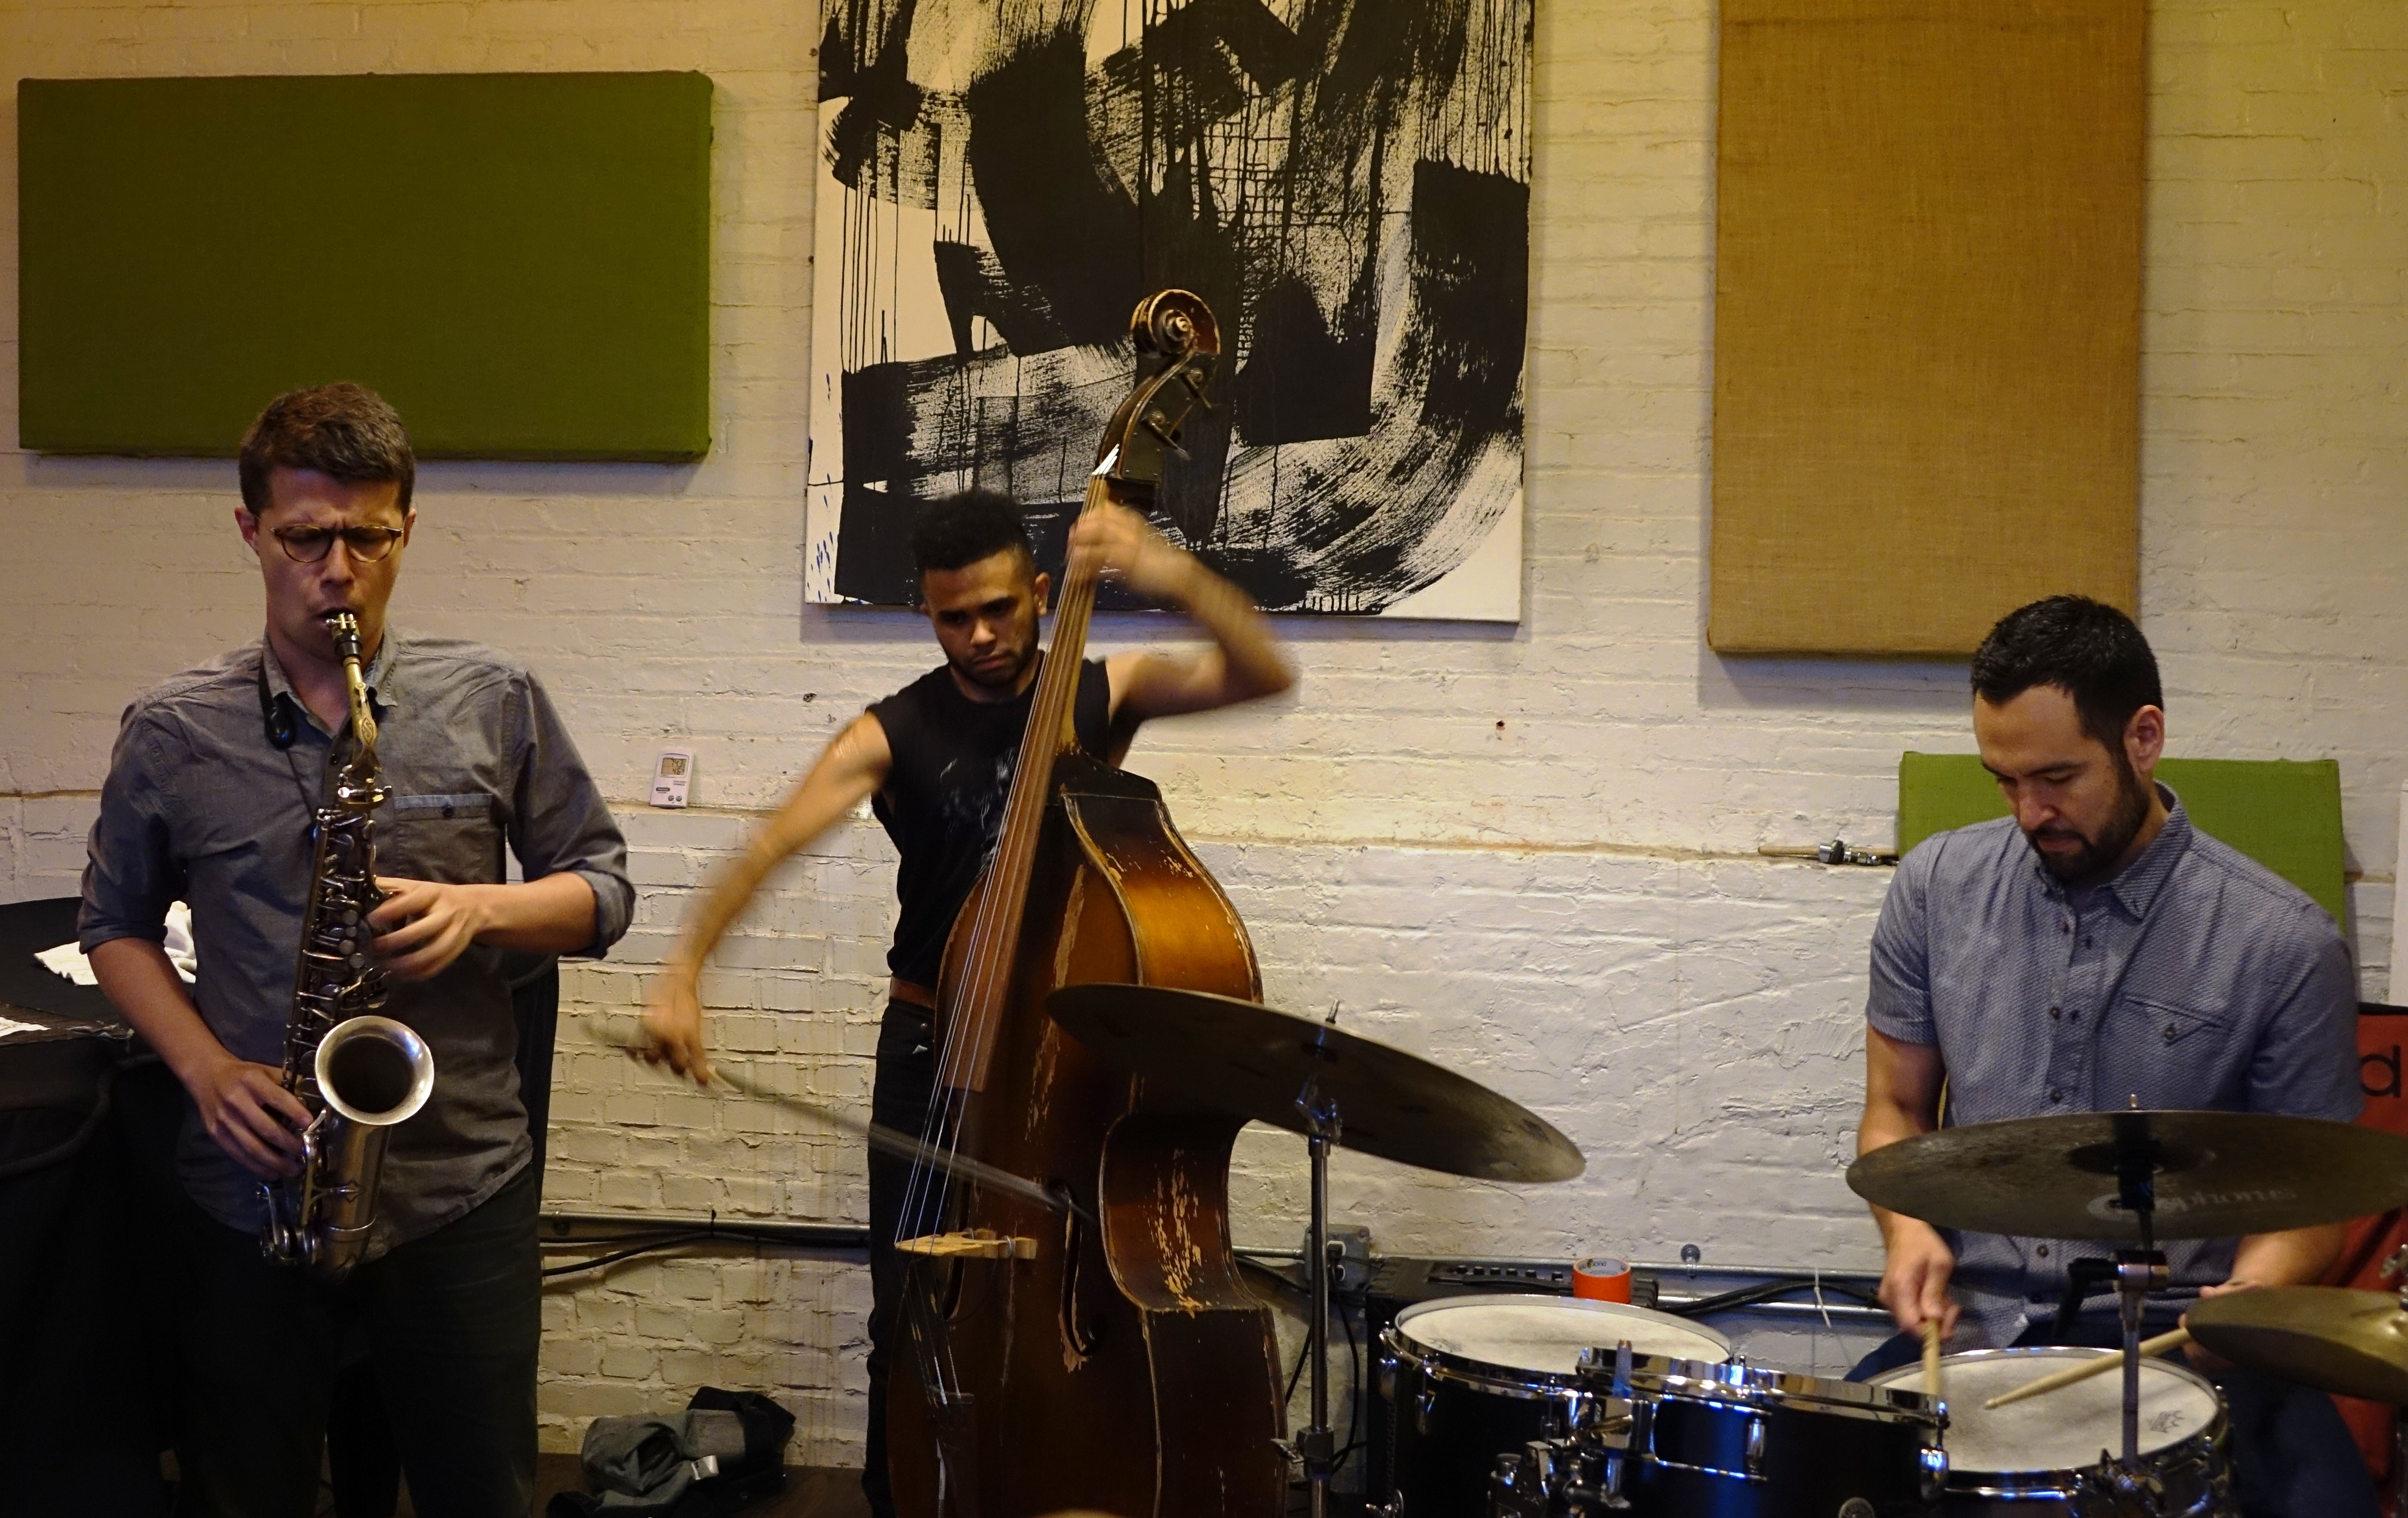 David Leon, Nick Dunston and Tomas Fujiwara at IBeam, Brooklyn in June 2019